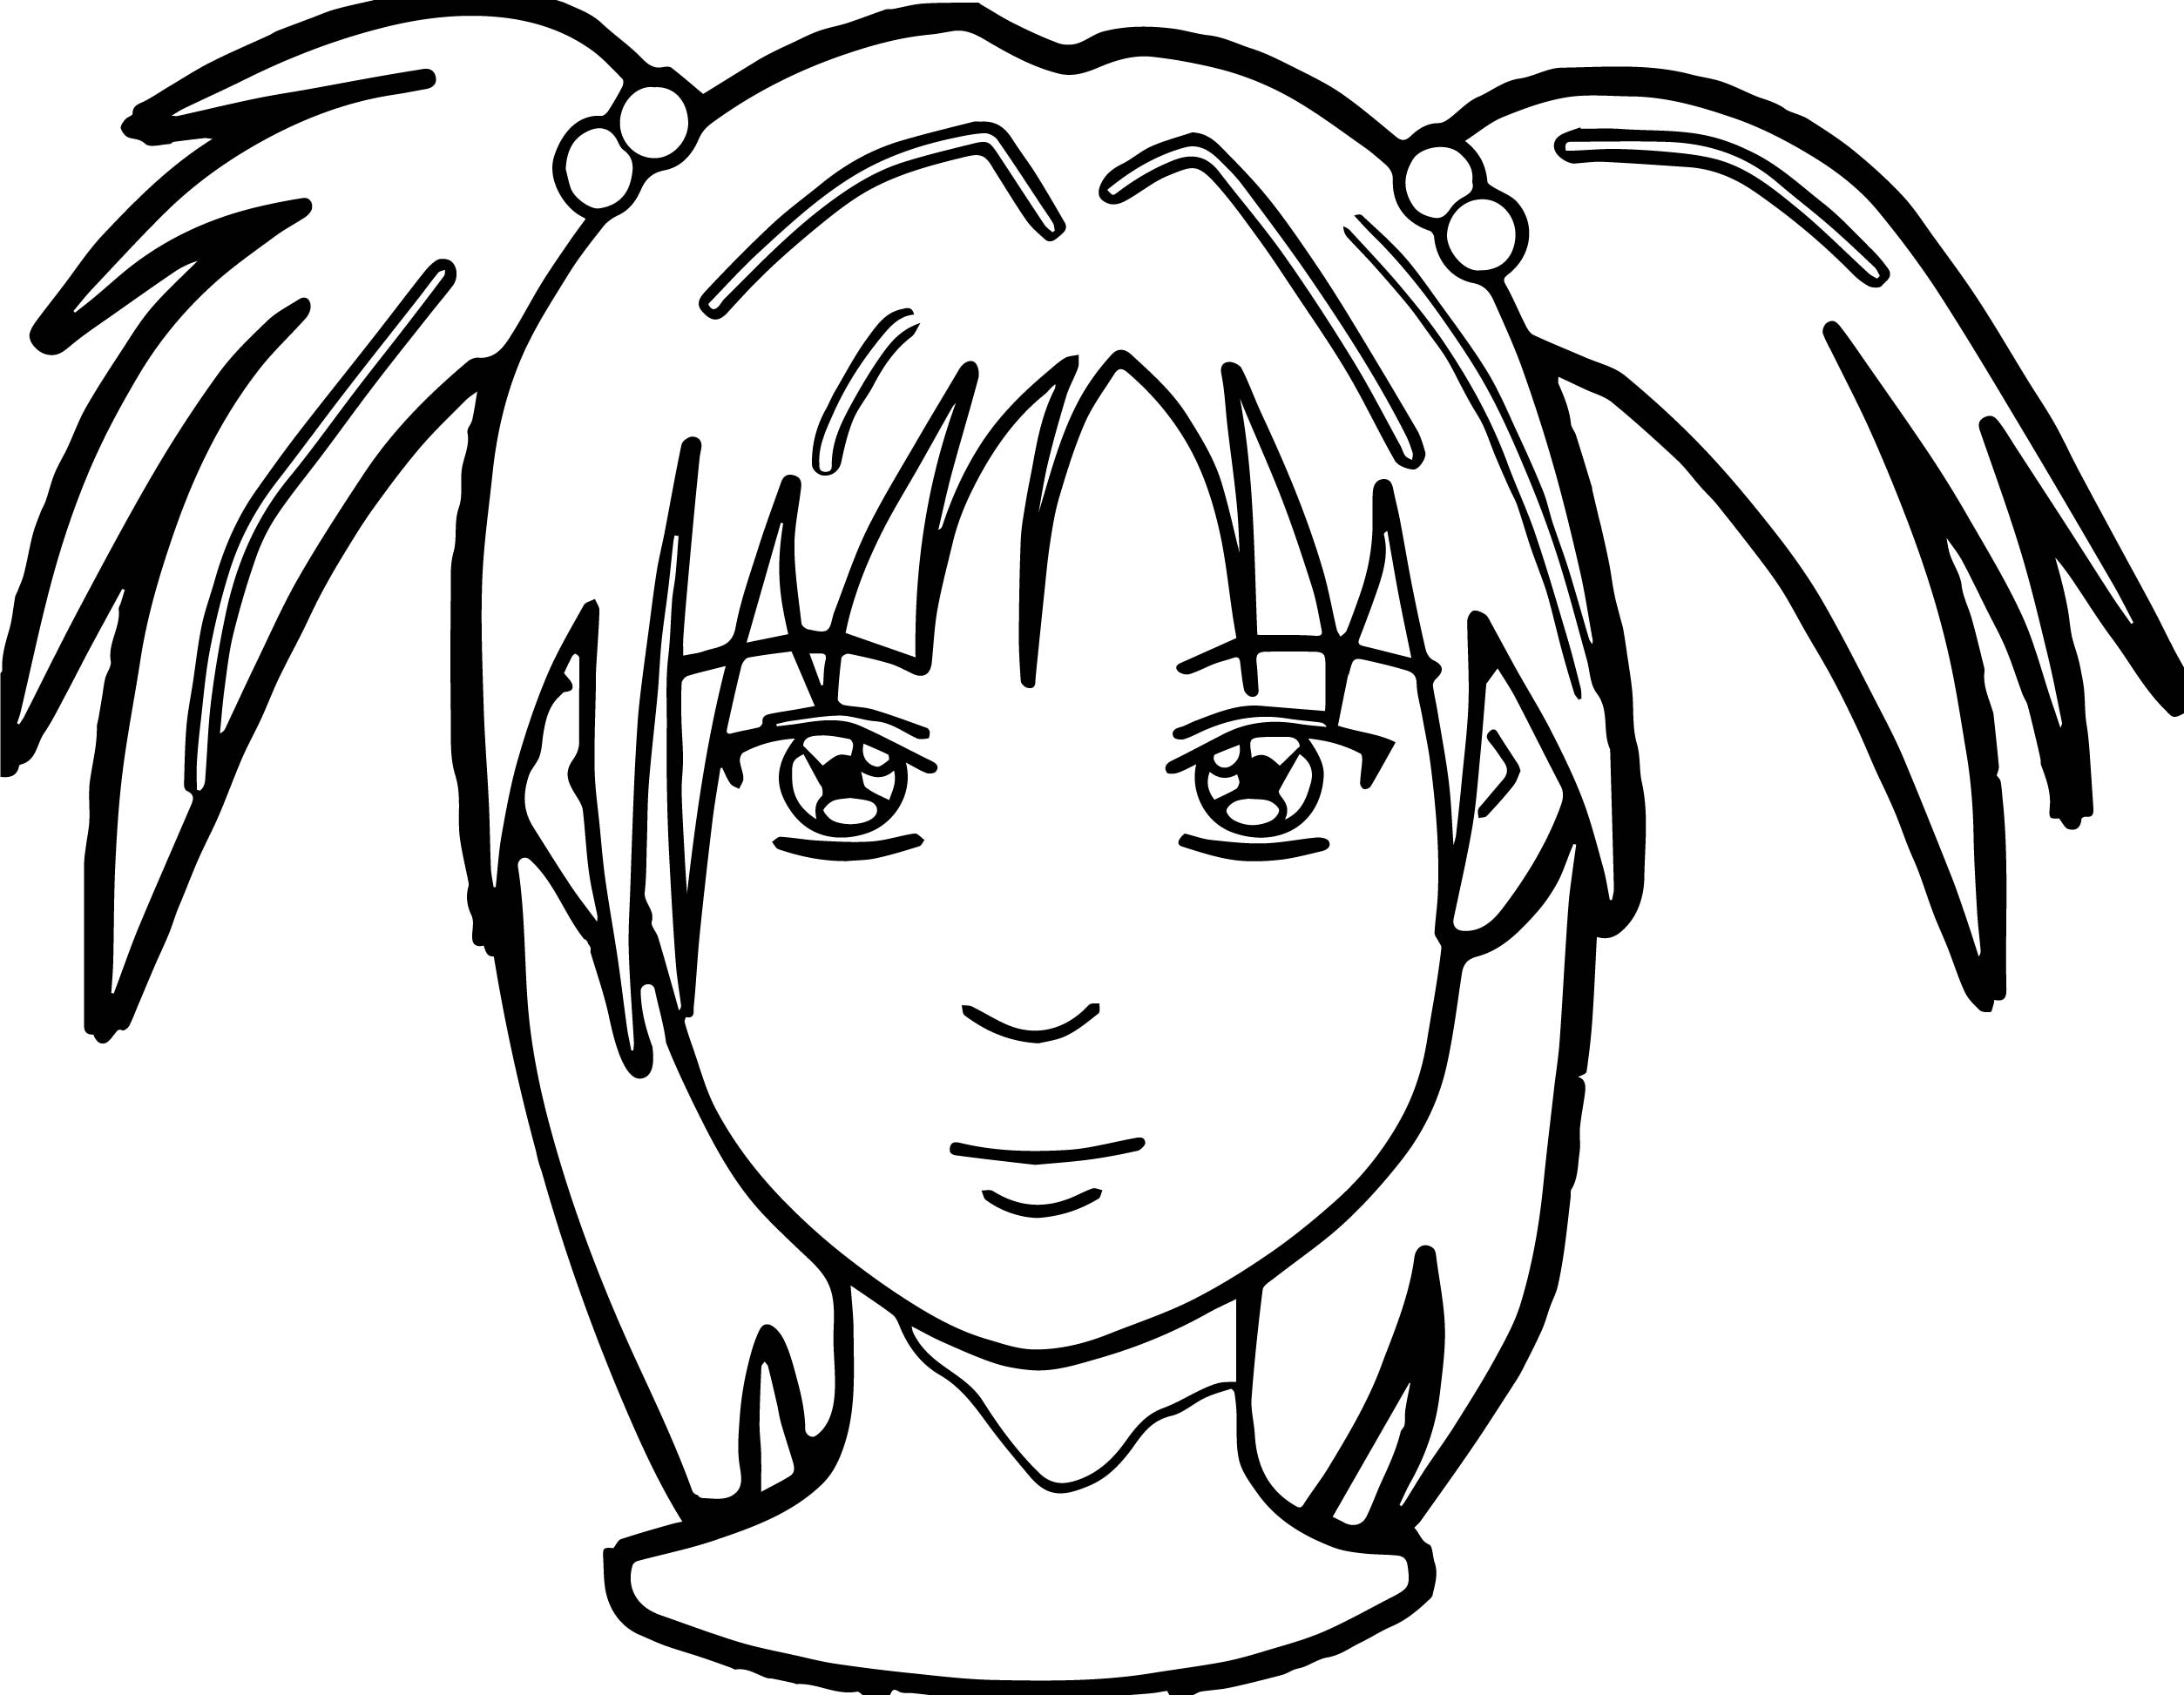 anime girl face coloring pages cute anime face girls coloring pages coloring home face girl anime coloring pages